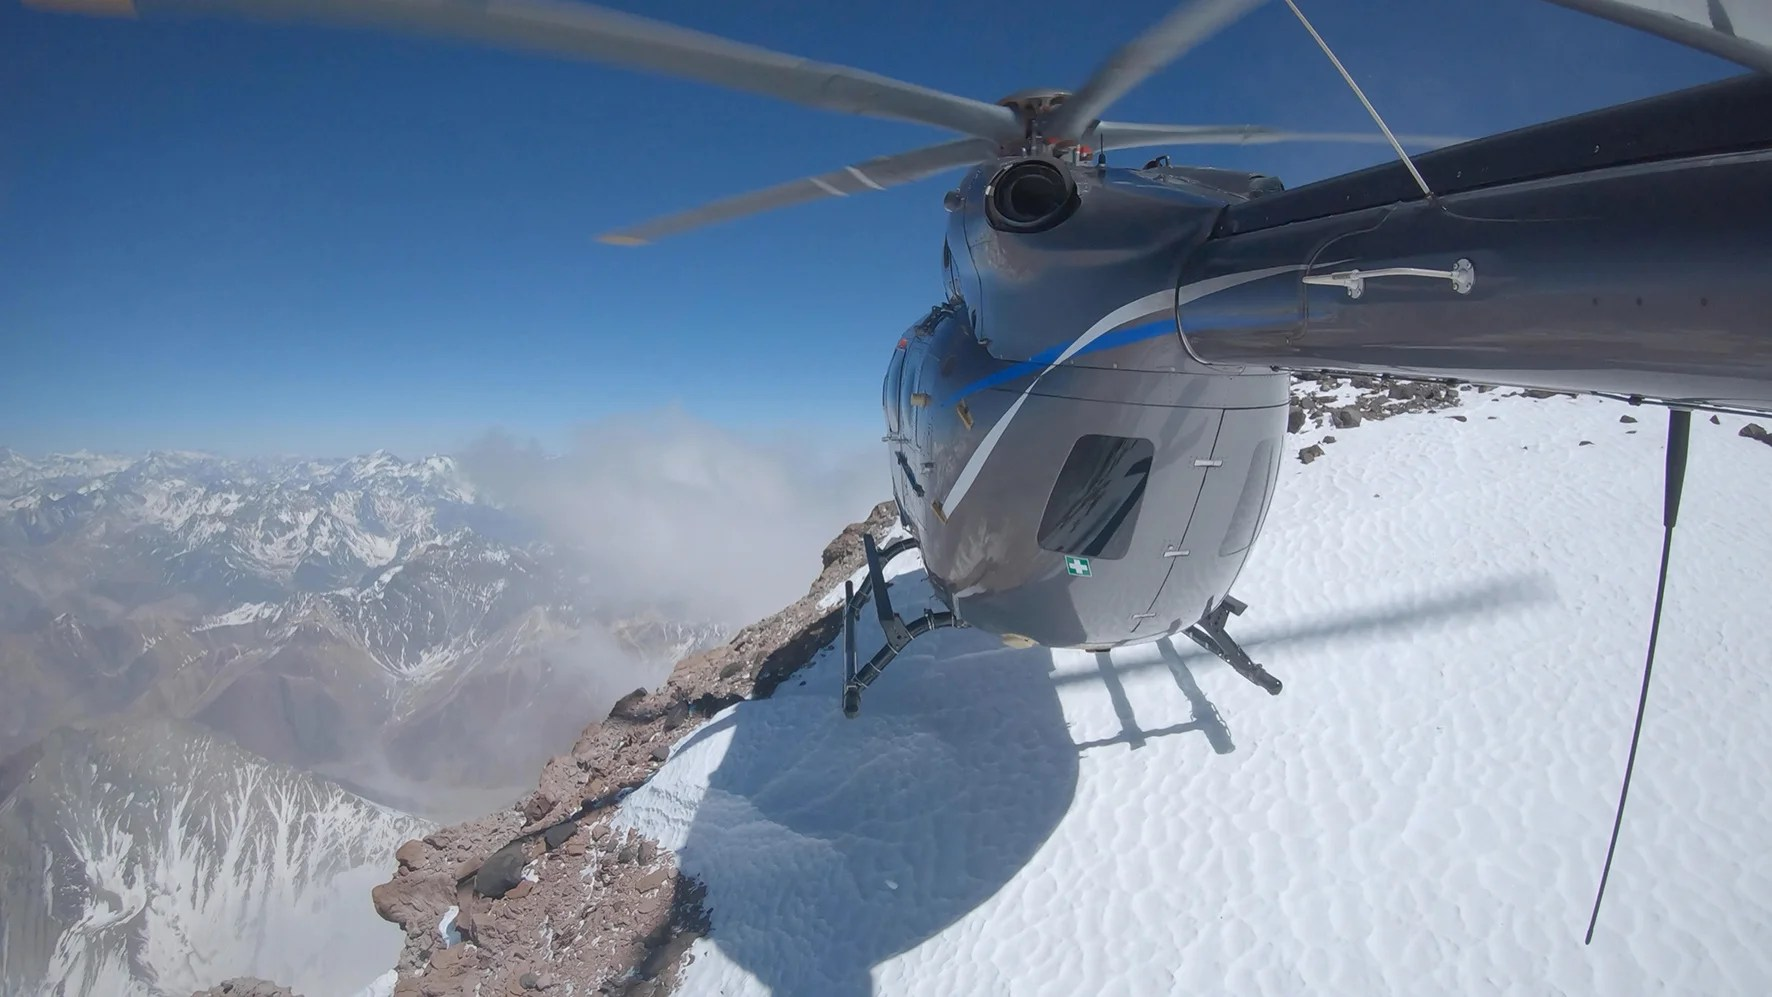 Airbus lands a helicopter on the tallest mountain outside Asia